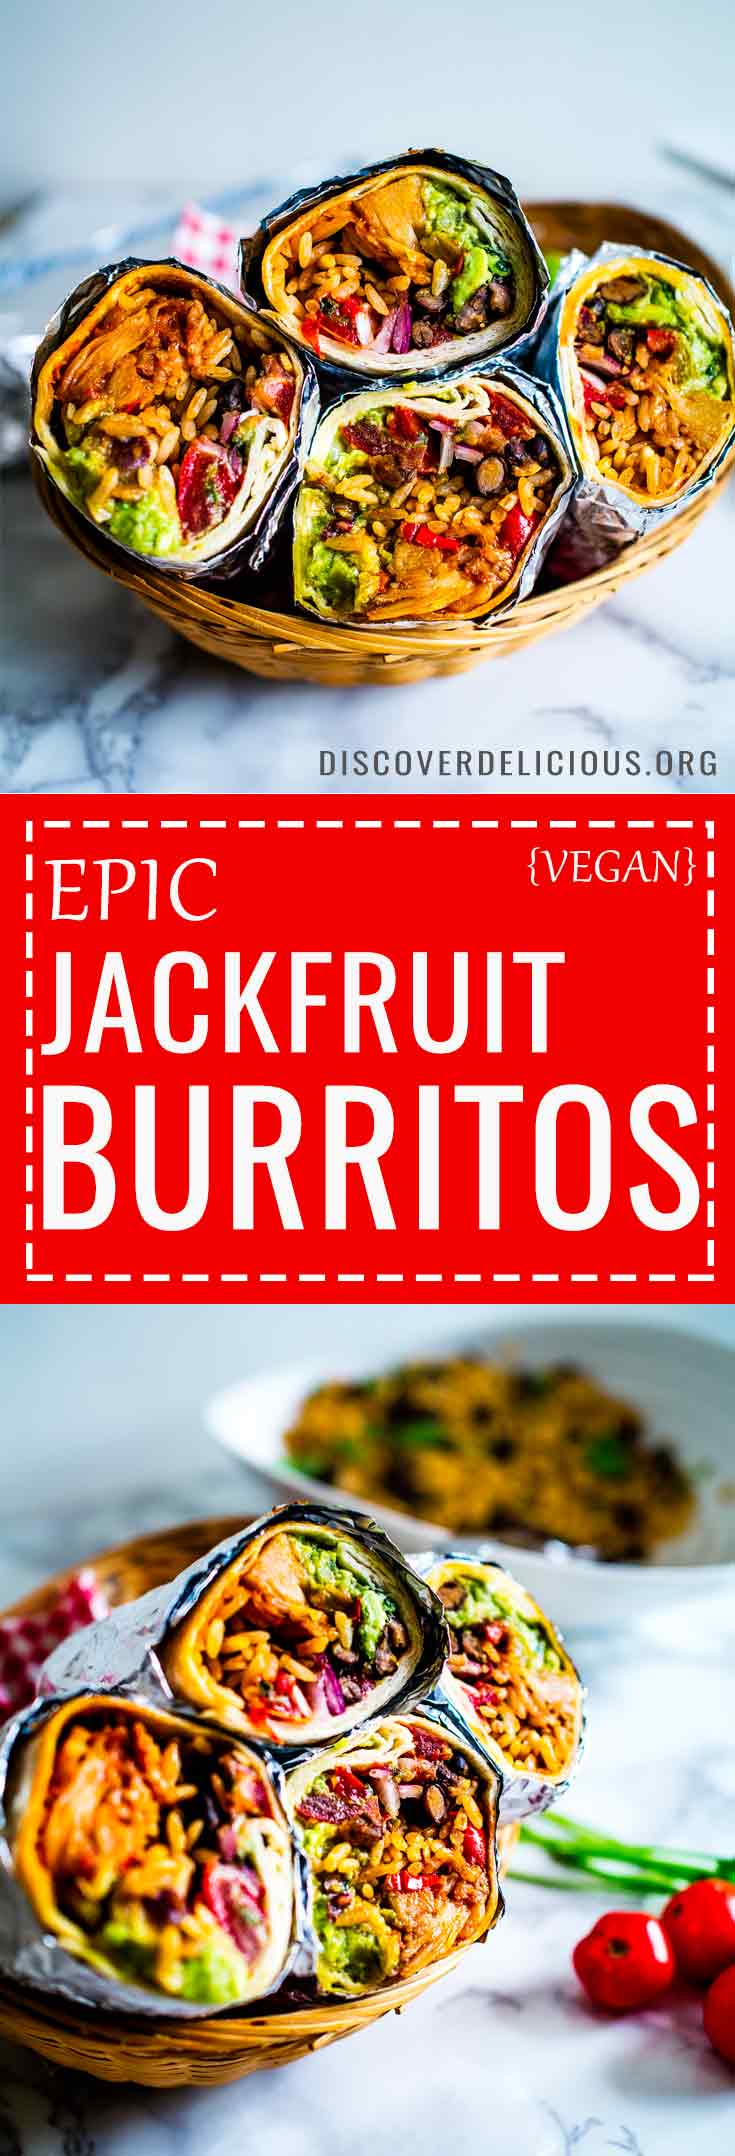 These epic vegan Jackfruit Burritos are filled with mexican rice, guacamole, refried black beans, pico de gallo and bbq jackfruit! Sumptuously satisfying and perfect to make over the weekend or as meal-prep!  #recipes #recipe #burrito #fajita #healthy #lunches #dinners #wrap #sauce #bean #freezer #filling #best #jackfruit #vegan #vegetarian #salsa #mealprep #prep